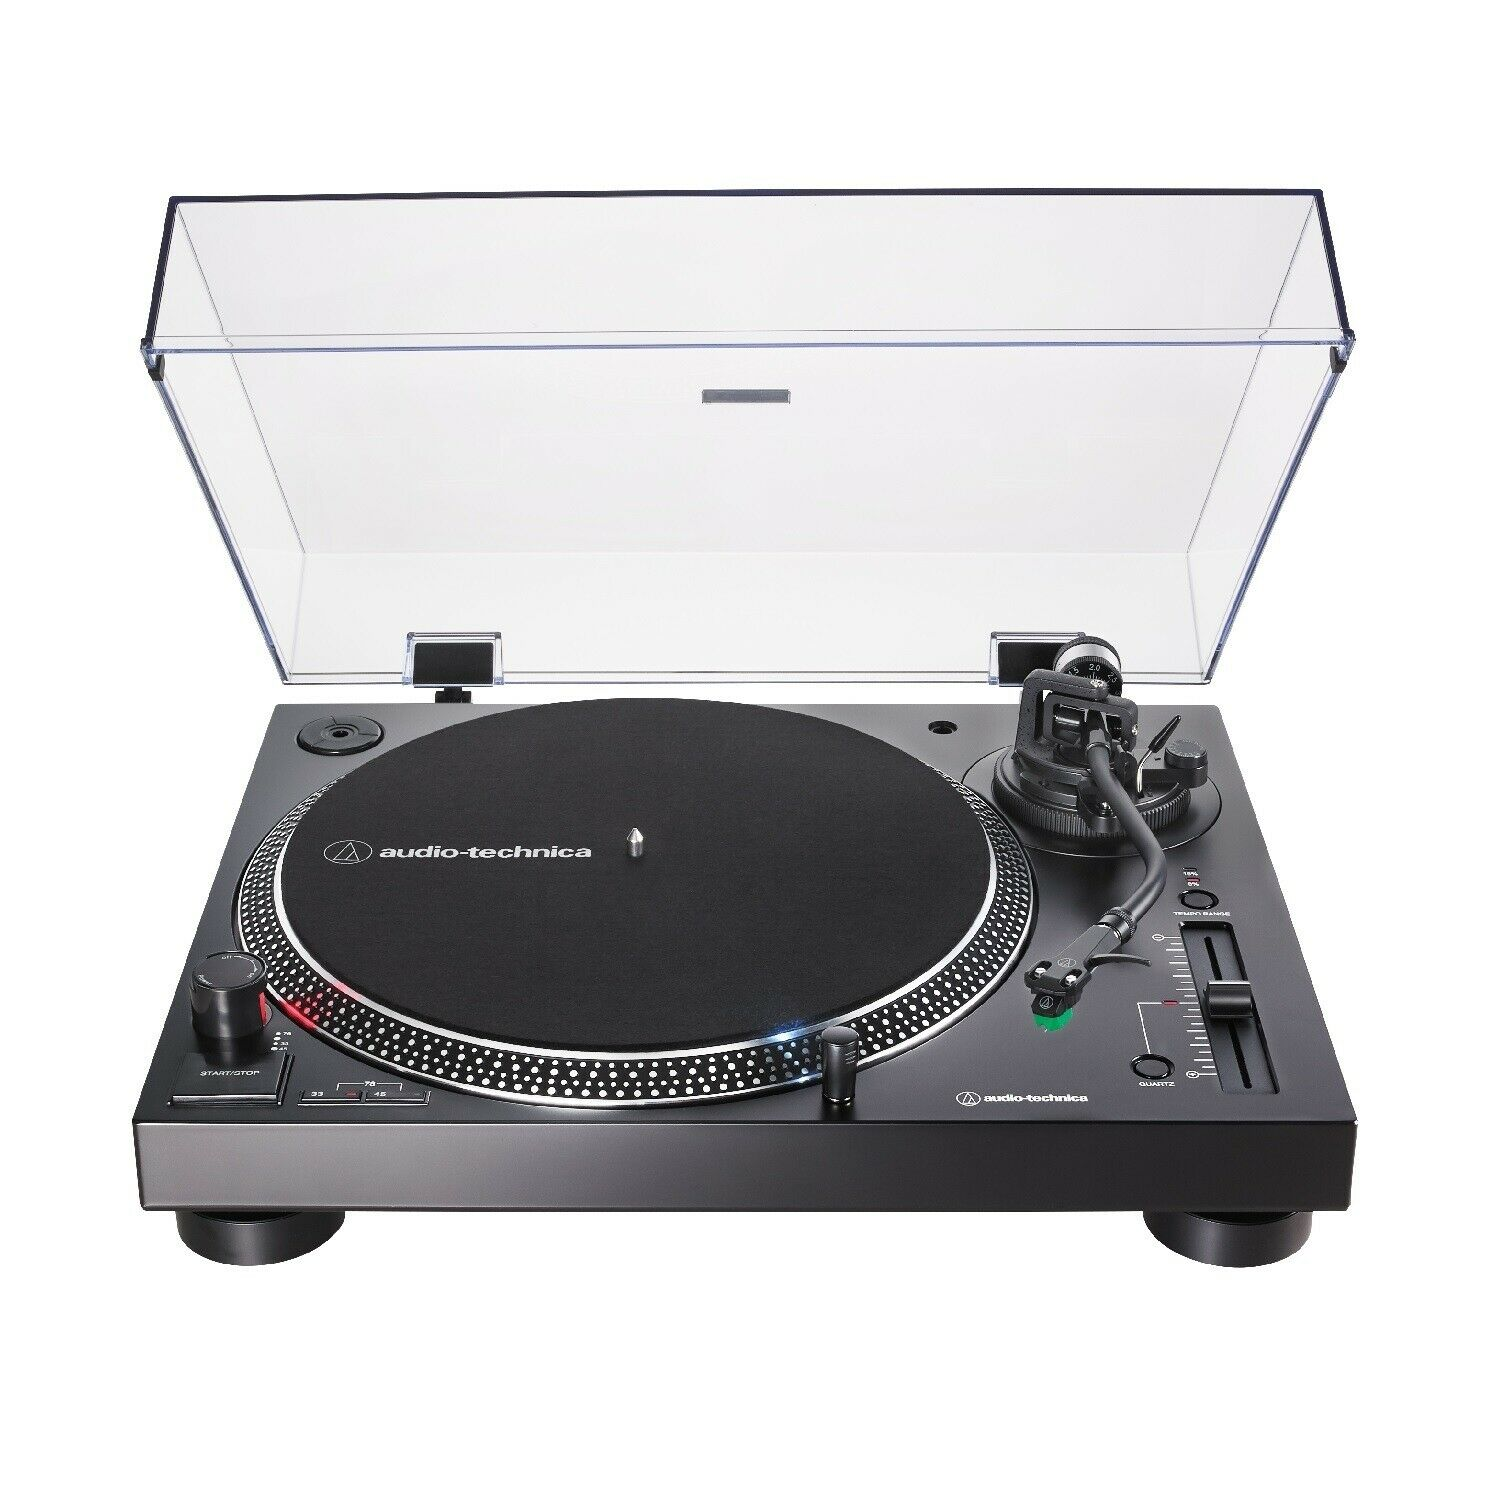 Audio-Technica AT-LP120X-USB Direct-Drive Analog and USB Turntable (Black). Buy it now for 299.00